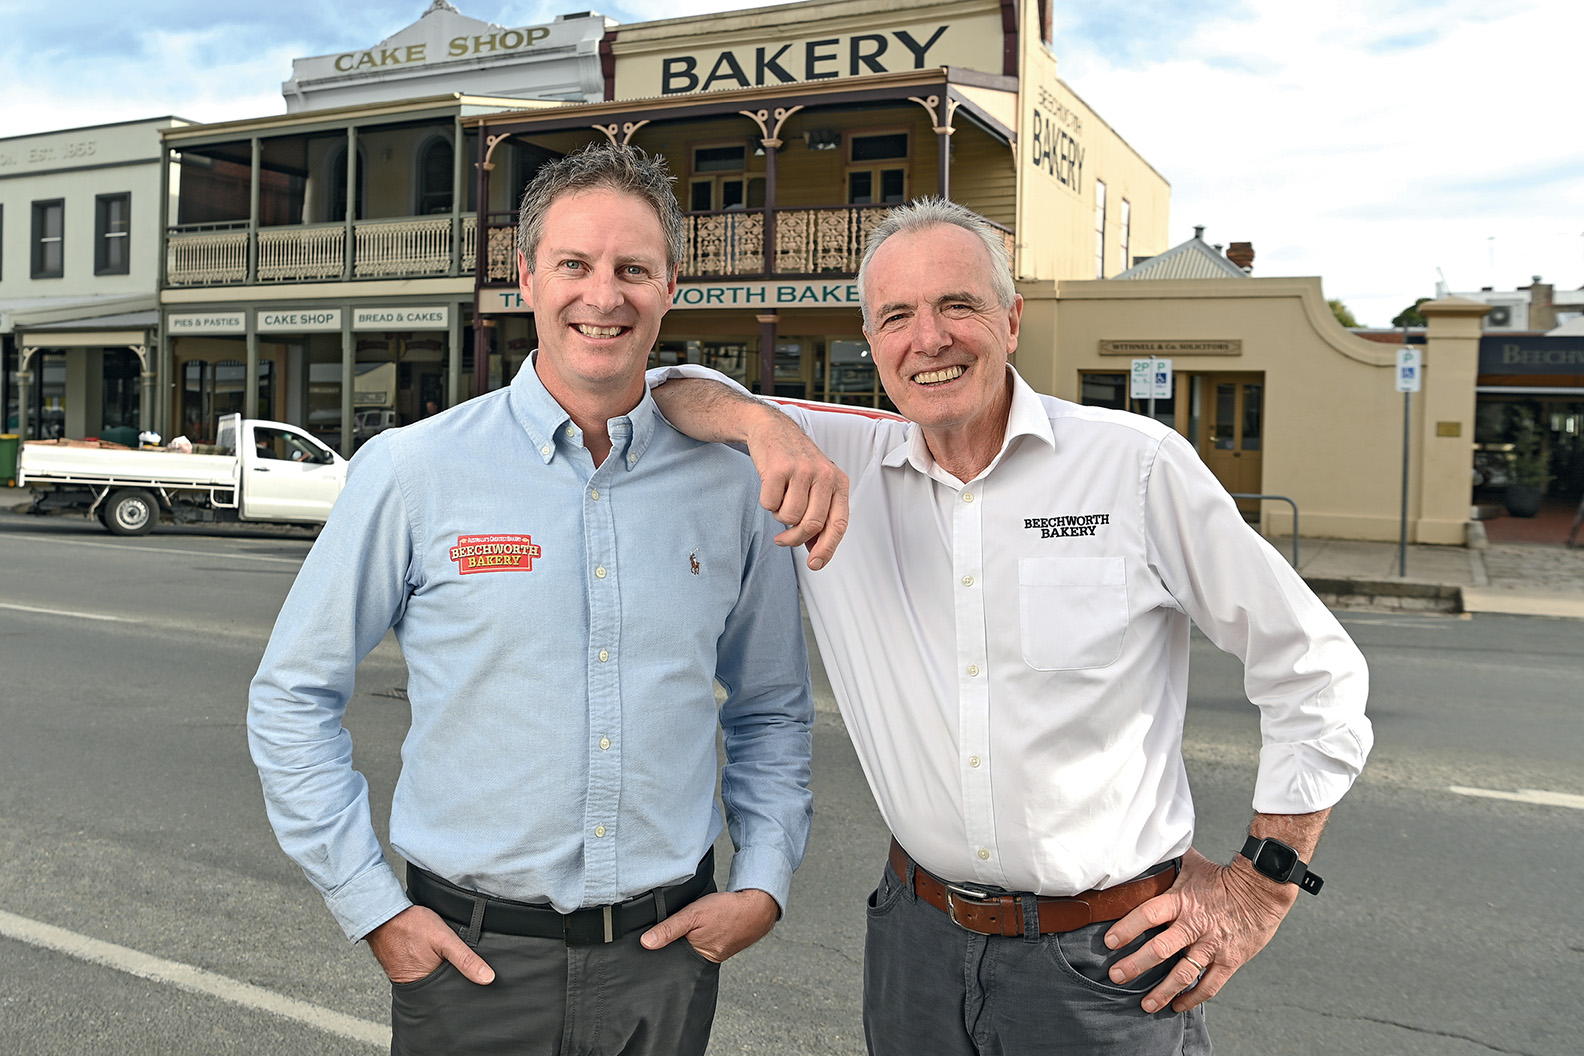 Marty Matassoni and Tom O'Toole, Co-Owners of Beechworth Bakery